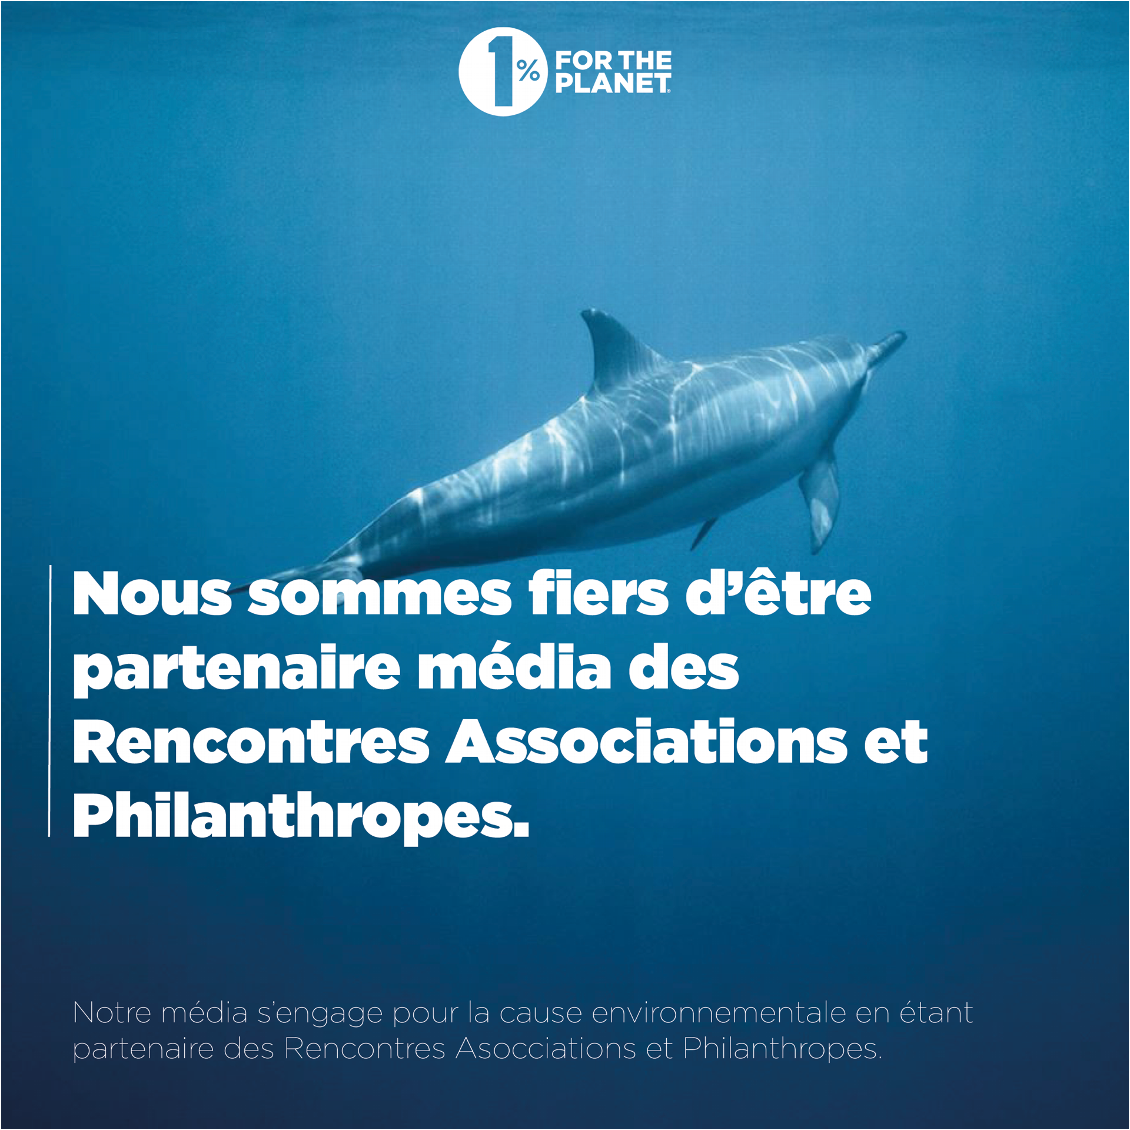 1% FOR THE PLANET : Rencontres Associations et Philanthropes 2019